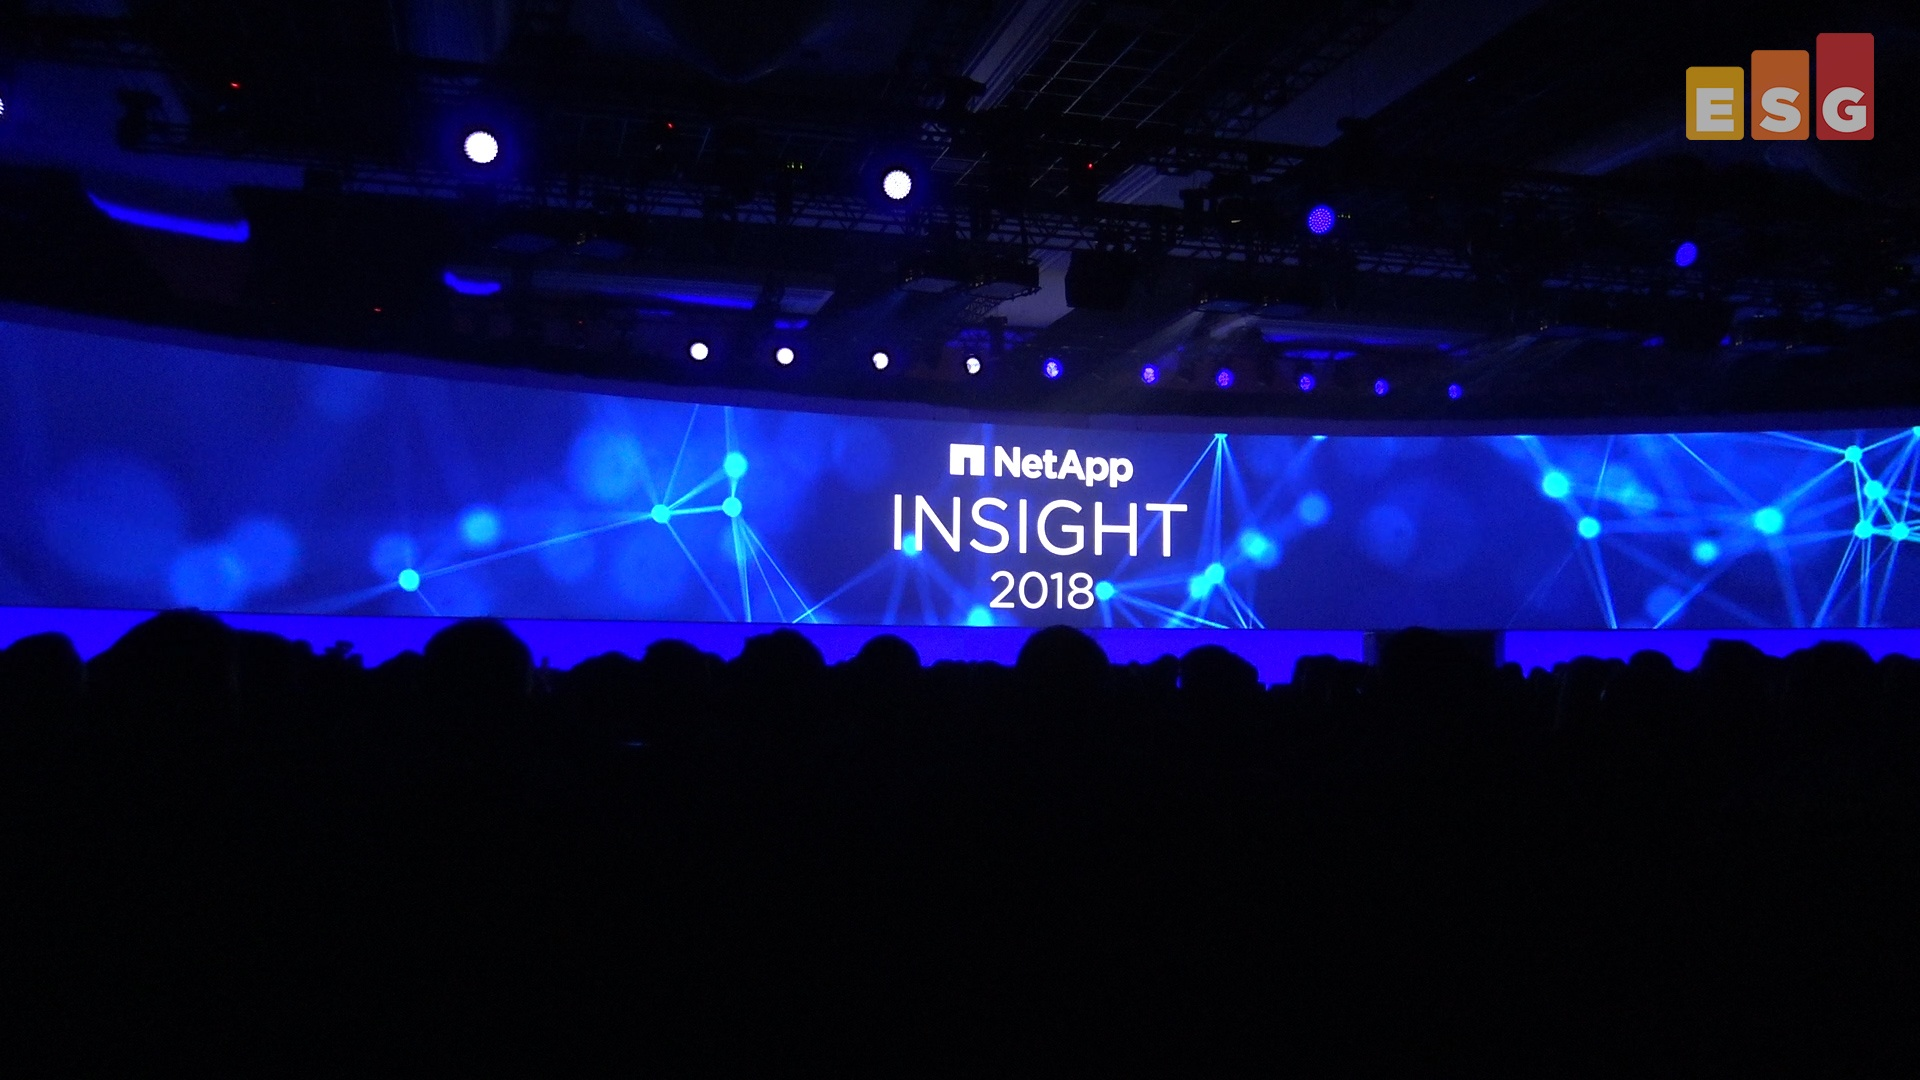 NetApp Insight: Both a Conference Name and an Apropos Comment (Includes Video)